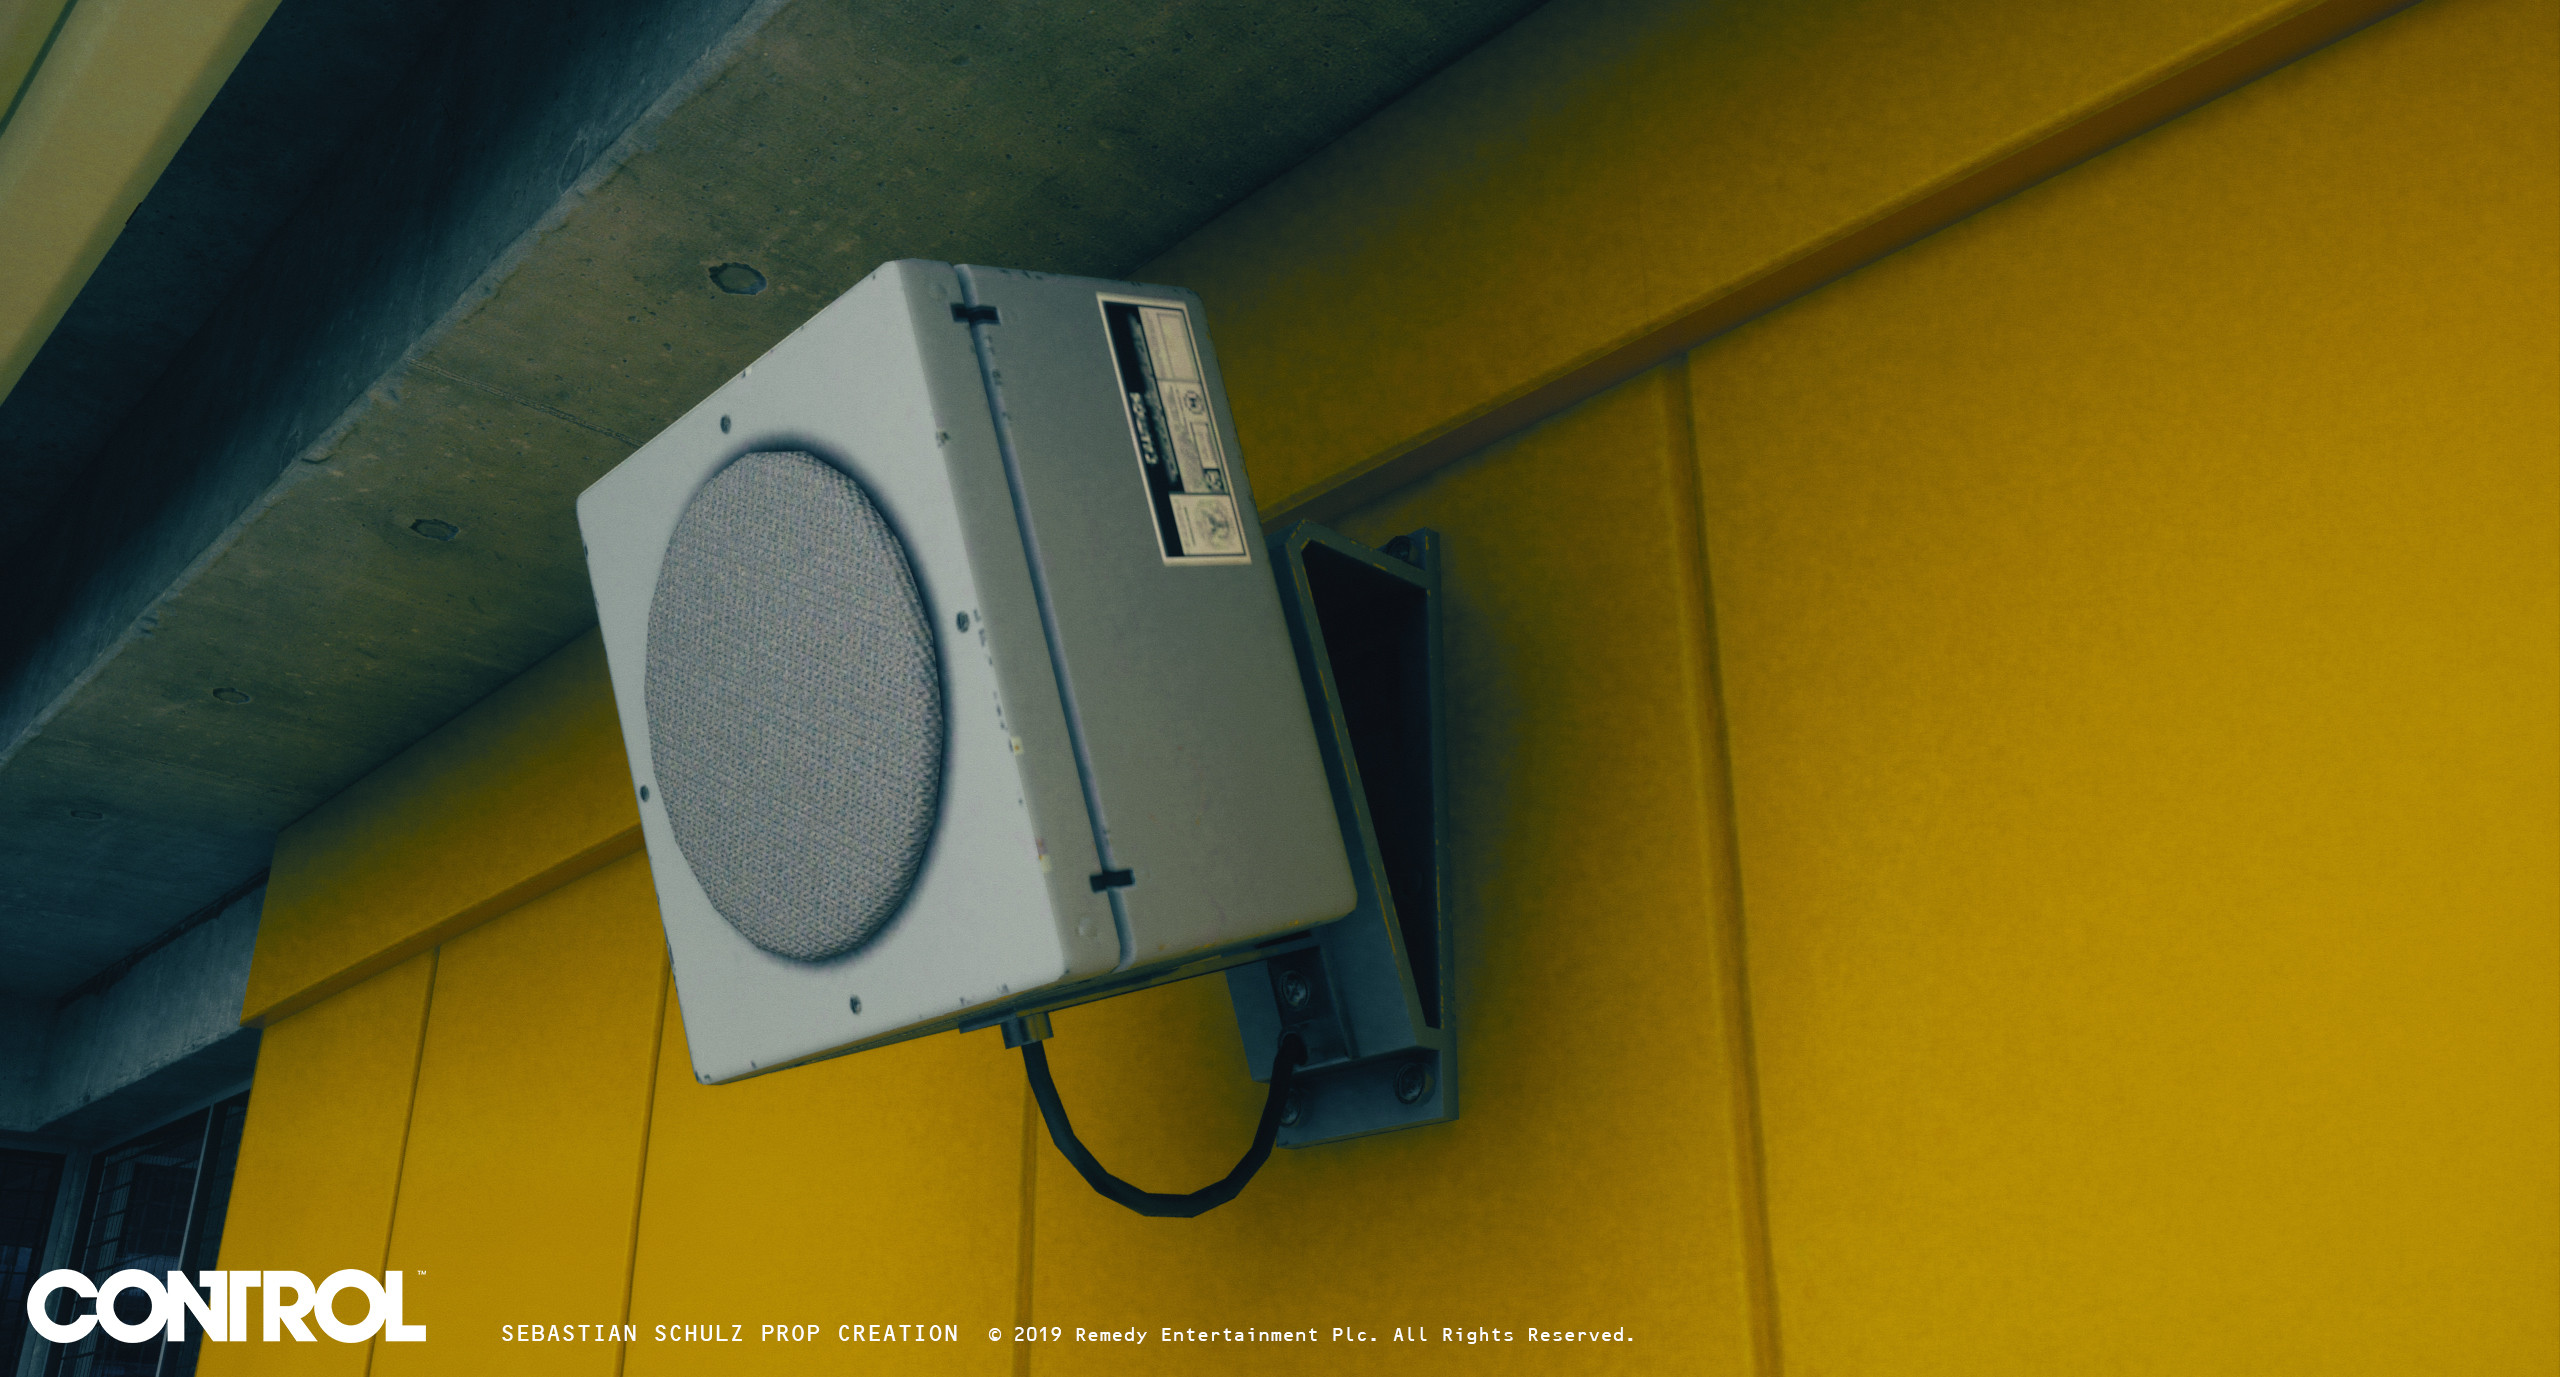 I created the speaker as well as the modular kit for the yellow wall panels